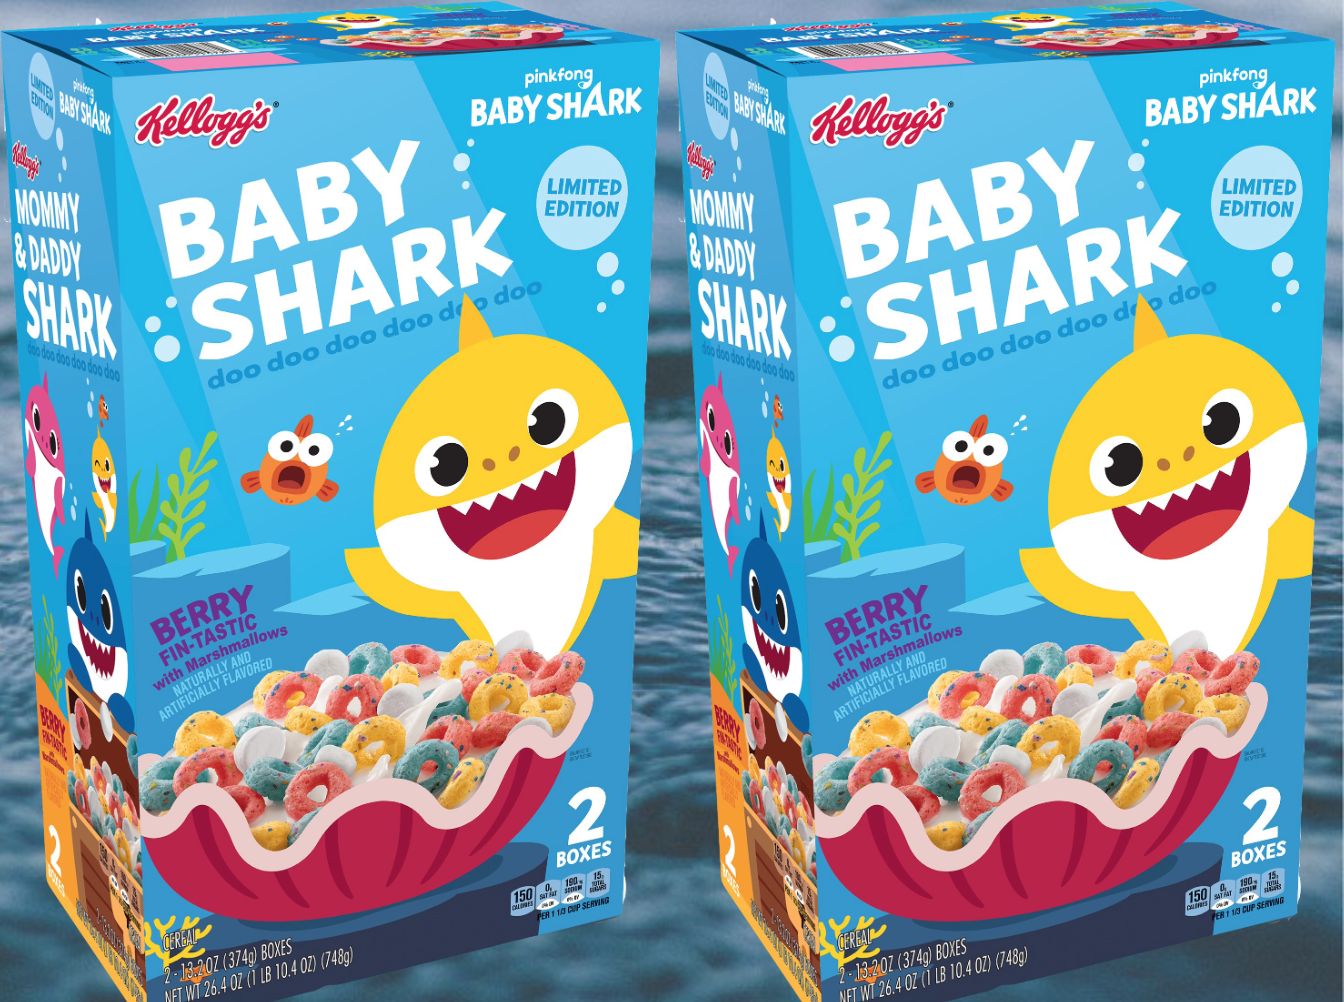 'Baby Shark' Cereal Is Happening Whether You Like It or Not